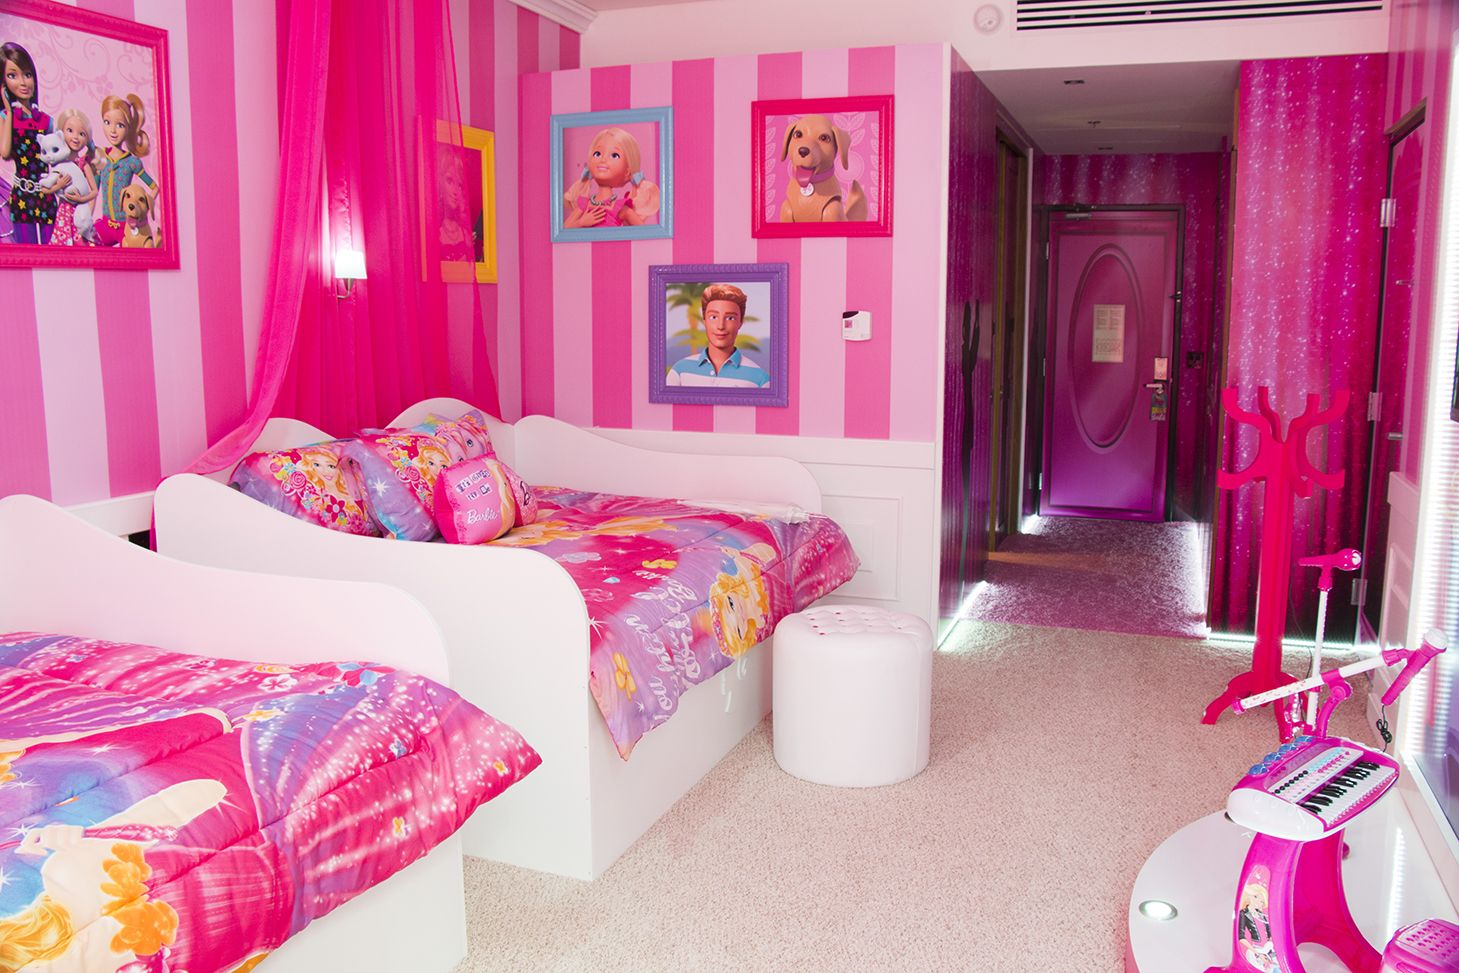 Cuartos para ni as de barbi buscar con google alcobas for Decoracion de dormitorios para ninas